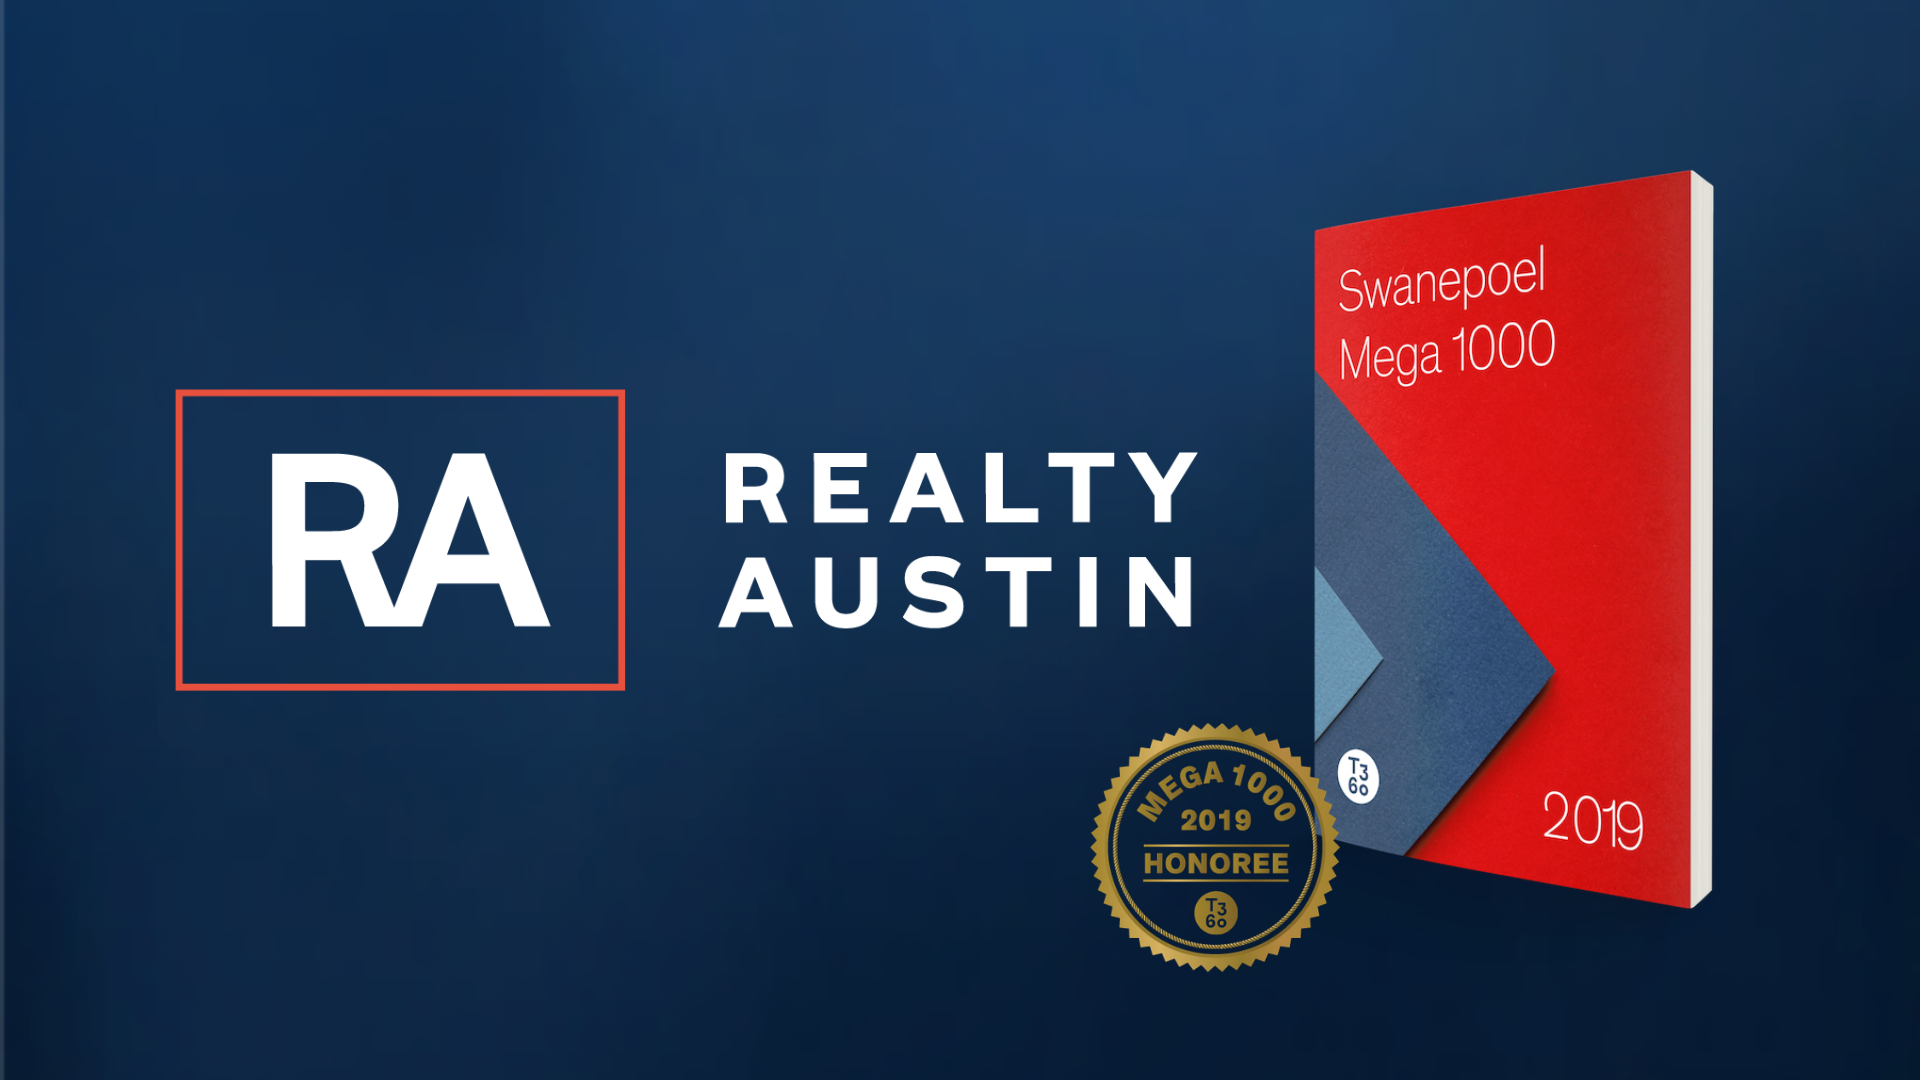 Realty Austin Recognized in Top 100 on Swanepoel's Mega 1000